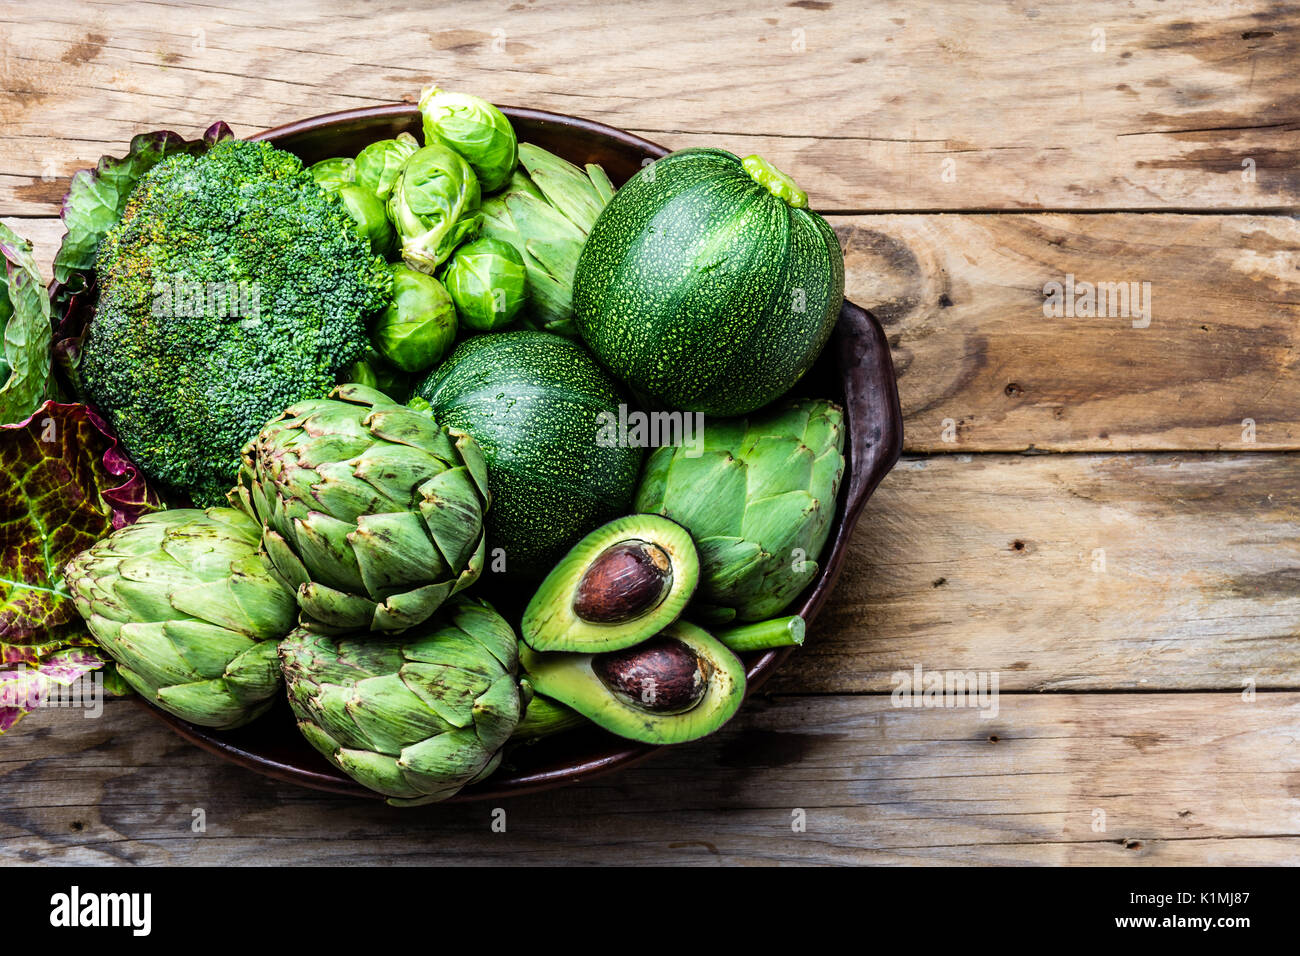 Cooking background harvest concept. Fresh organic green vegetables in clay pot on wooden background - Stock Image